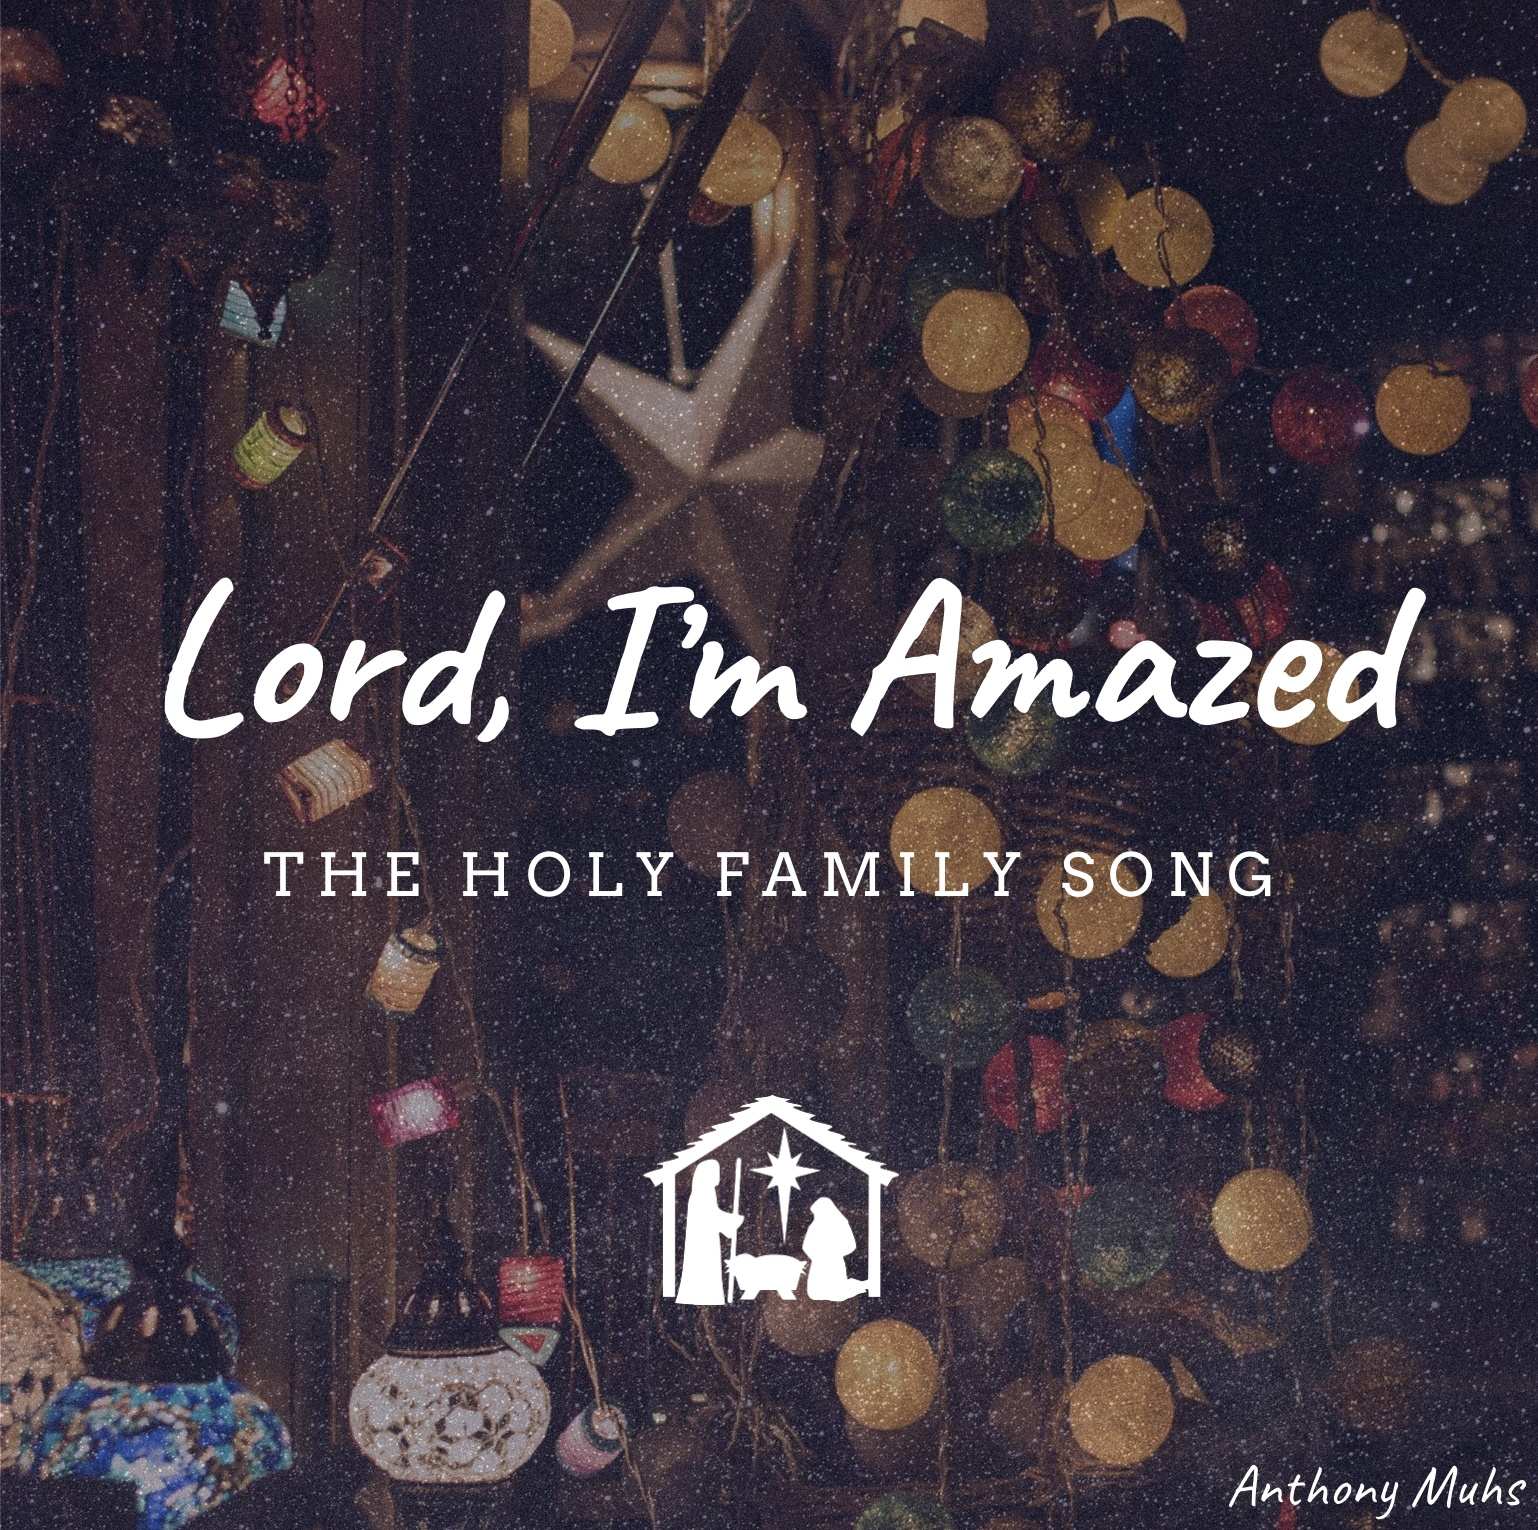 Lord, I'm Amazed (The Holy Family Song)